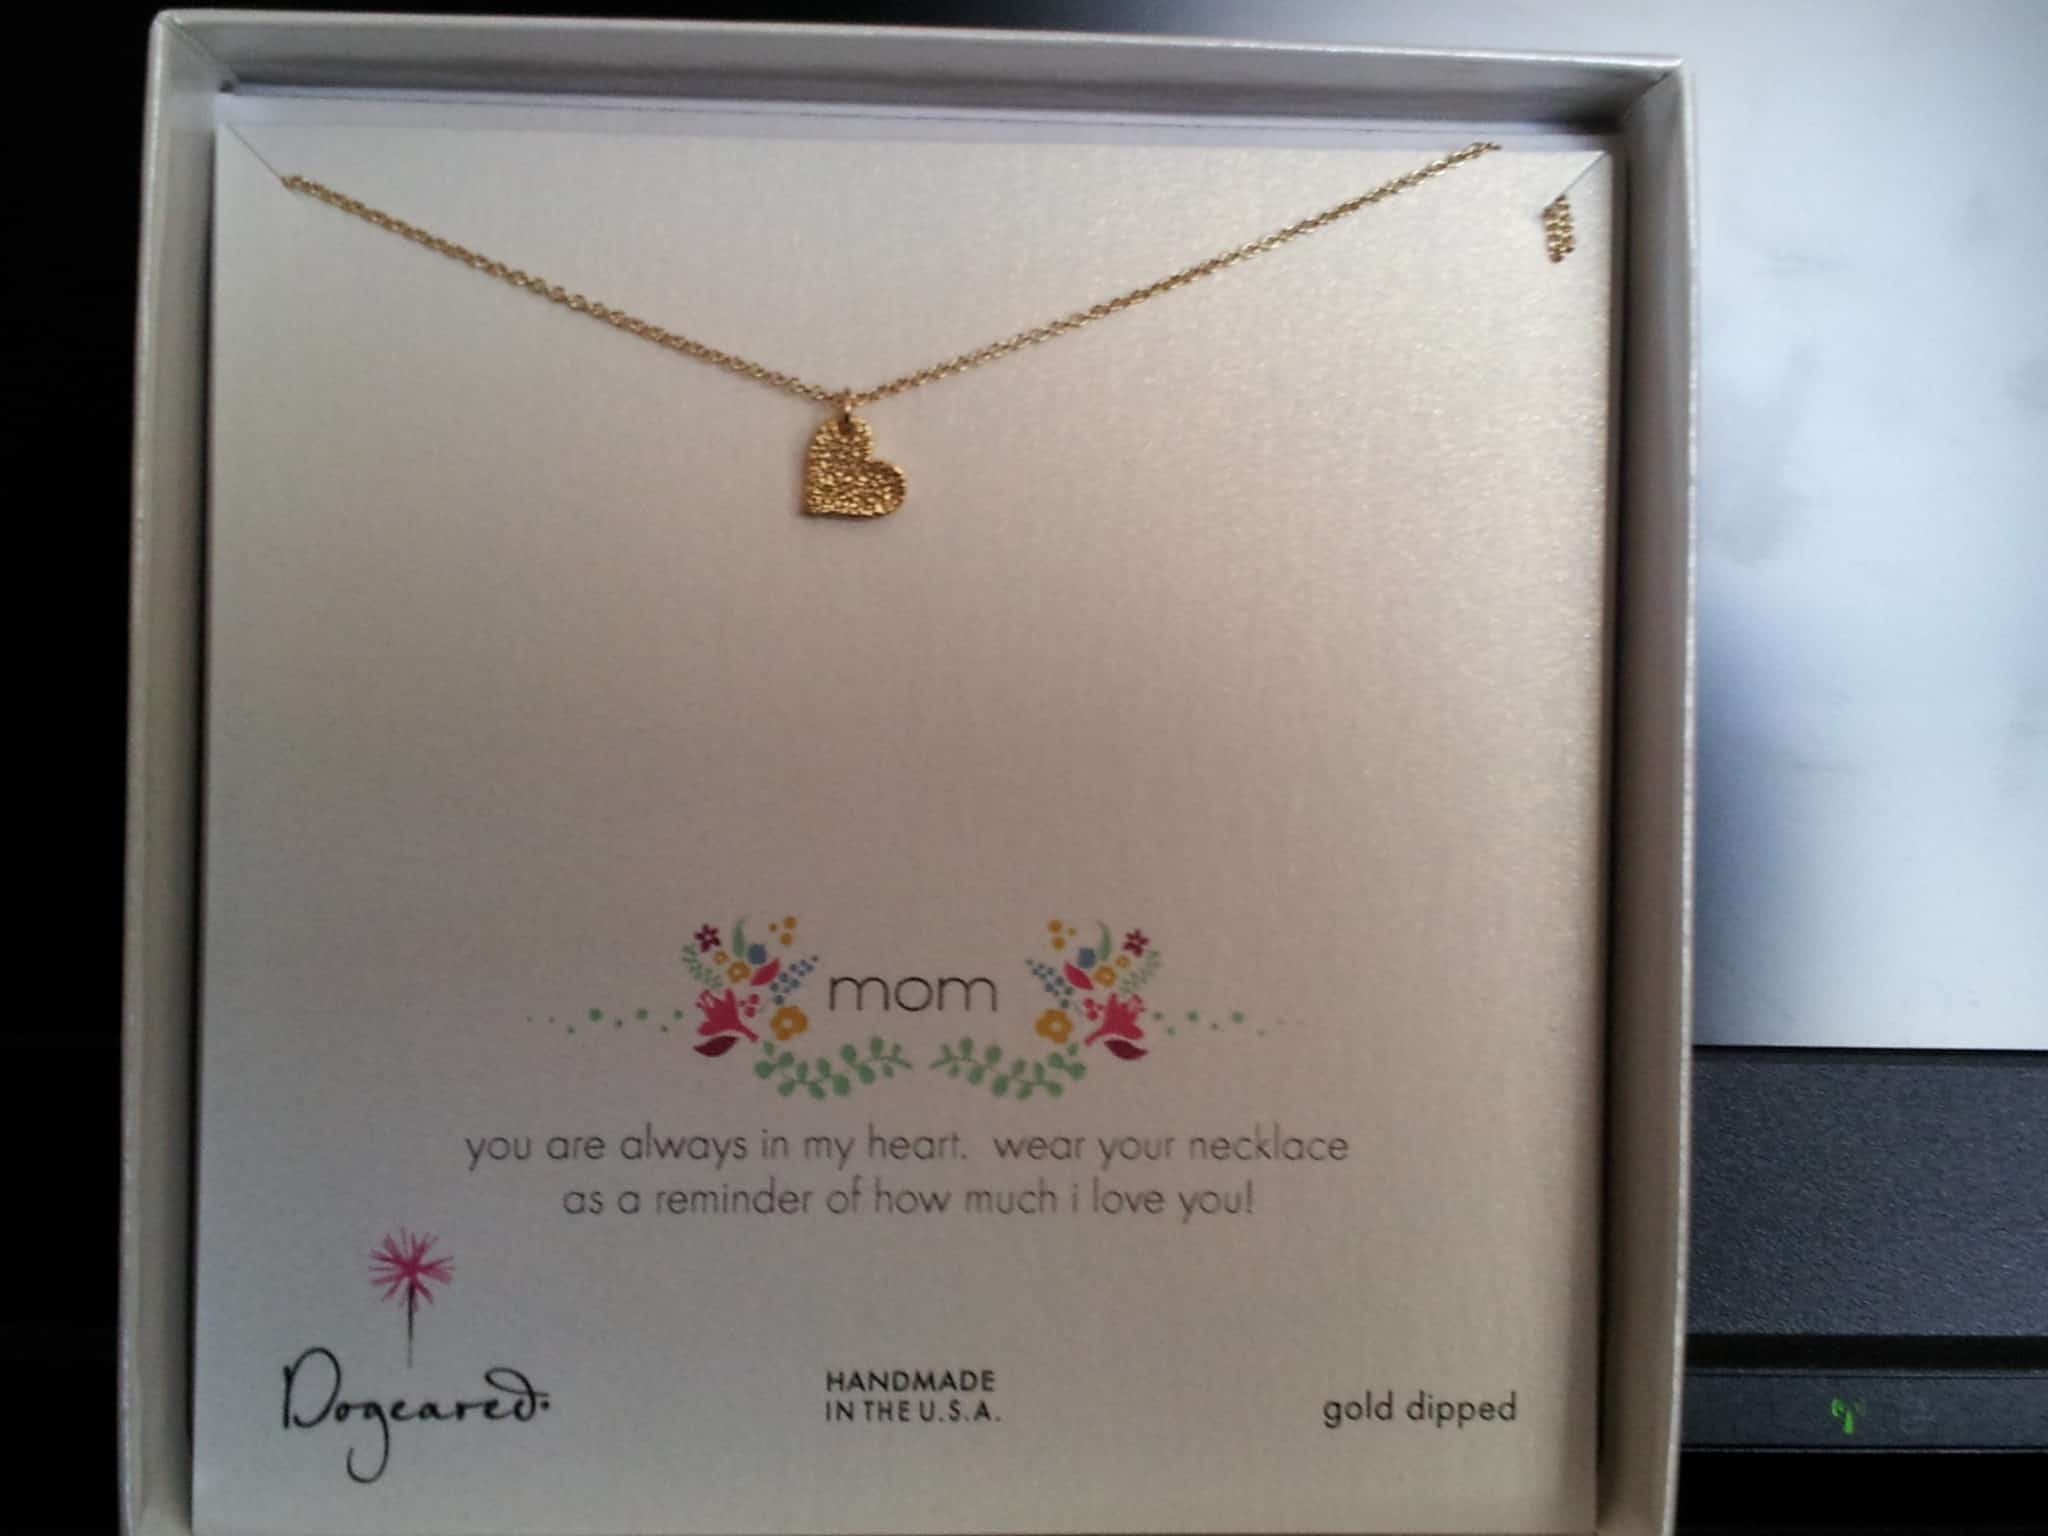 Mother's Day Gold Heart Charm Necklace Review and Giveaway